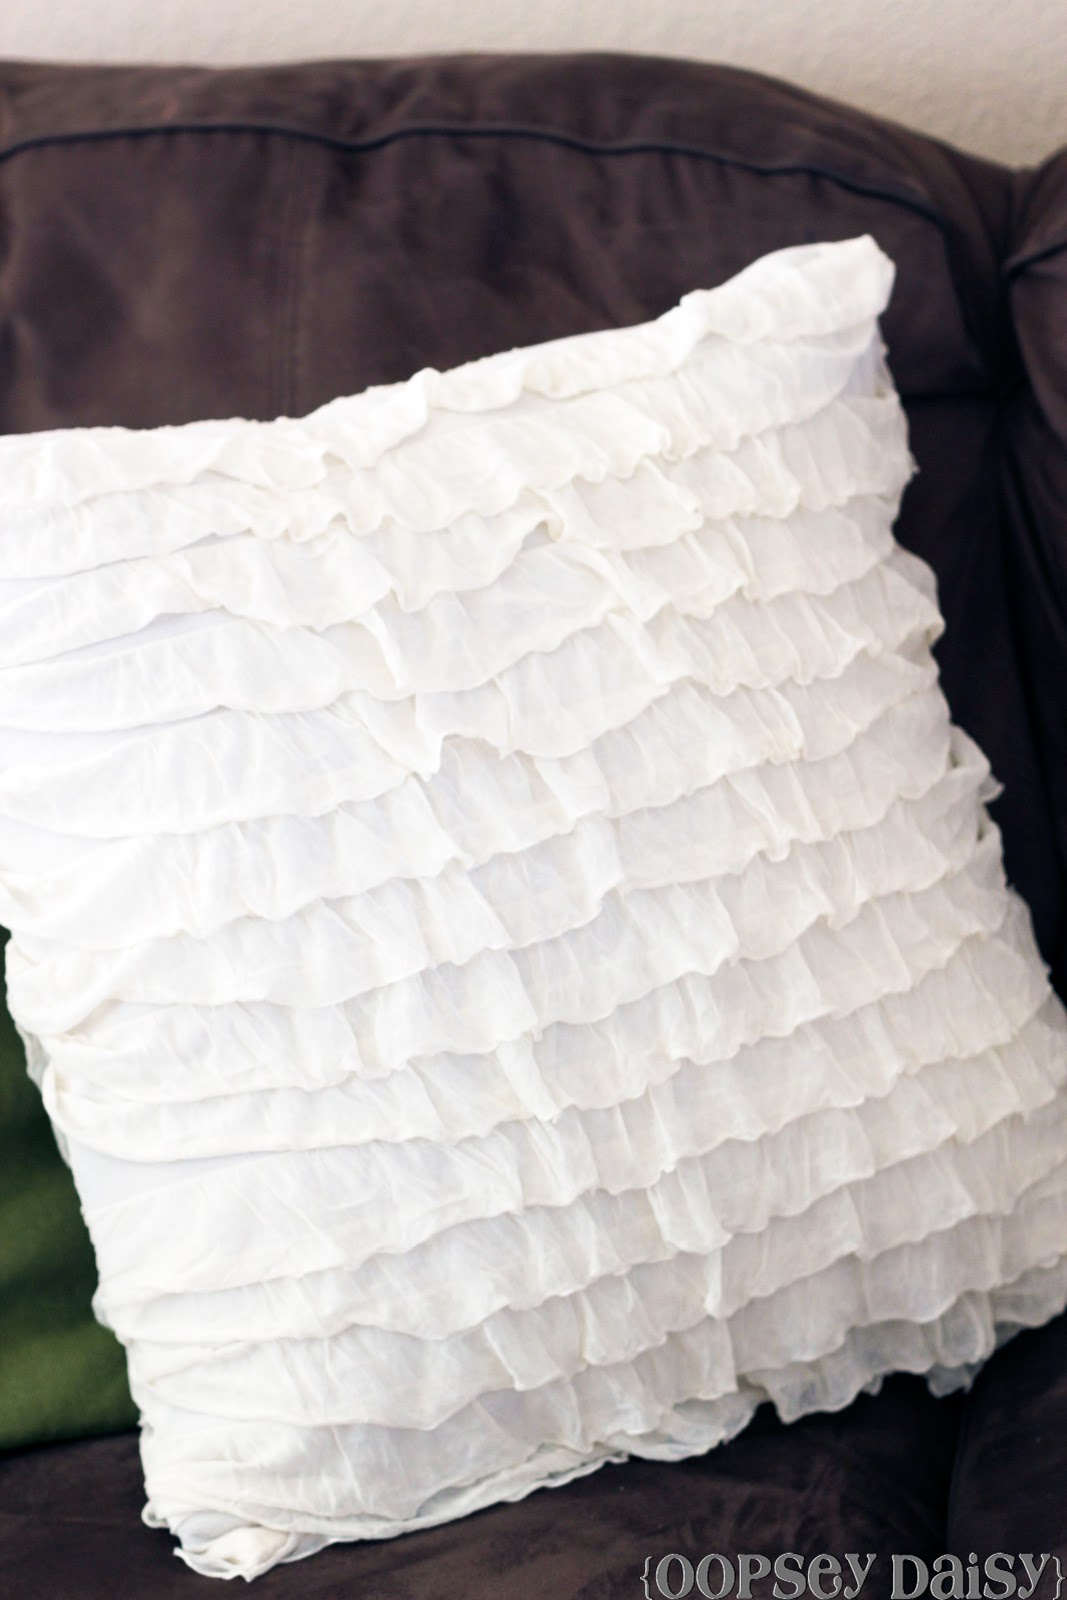 You searched for: ruffle pillow! Etsy is the home to thousands of handmade, vintage, and one-of-a-kind products and gifts related to your search. No matter what you're looking for or where you are in the world, our global marketplace of sellers can help you find unique and affordable options. Let's get started!